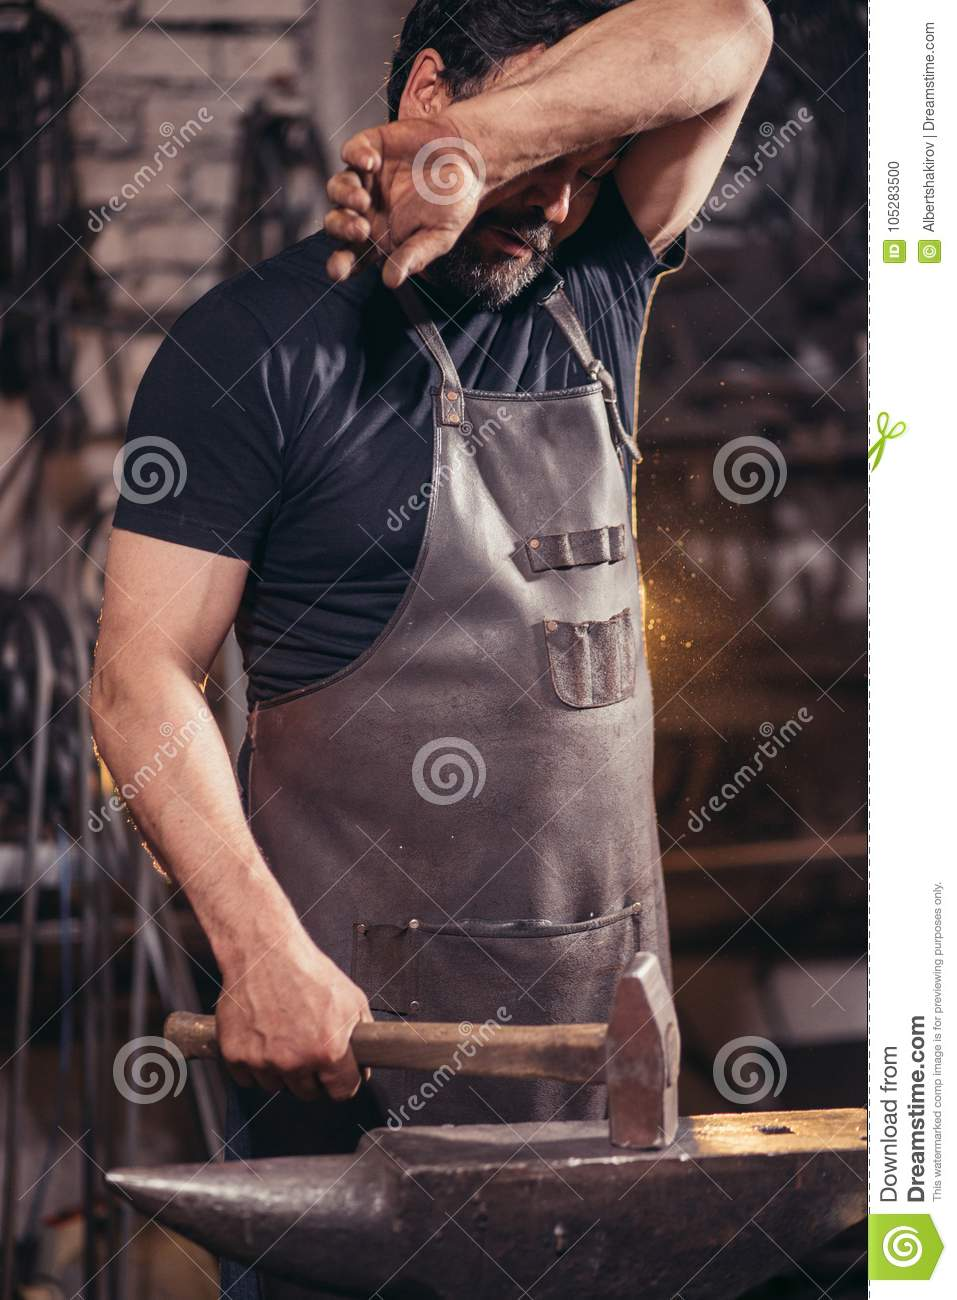 Blacksmith Wipe Sweat In Workshop Stock Photo - Image of